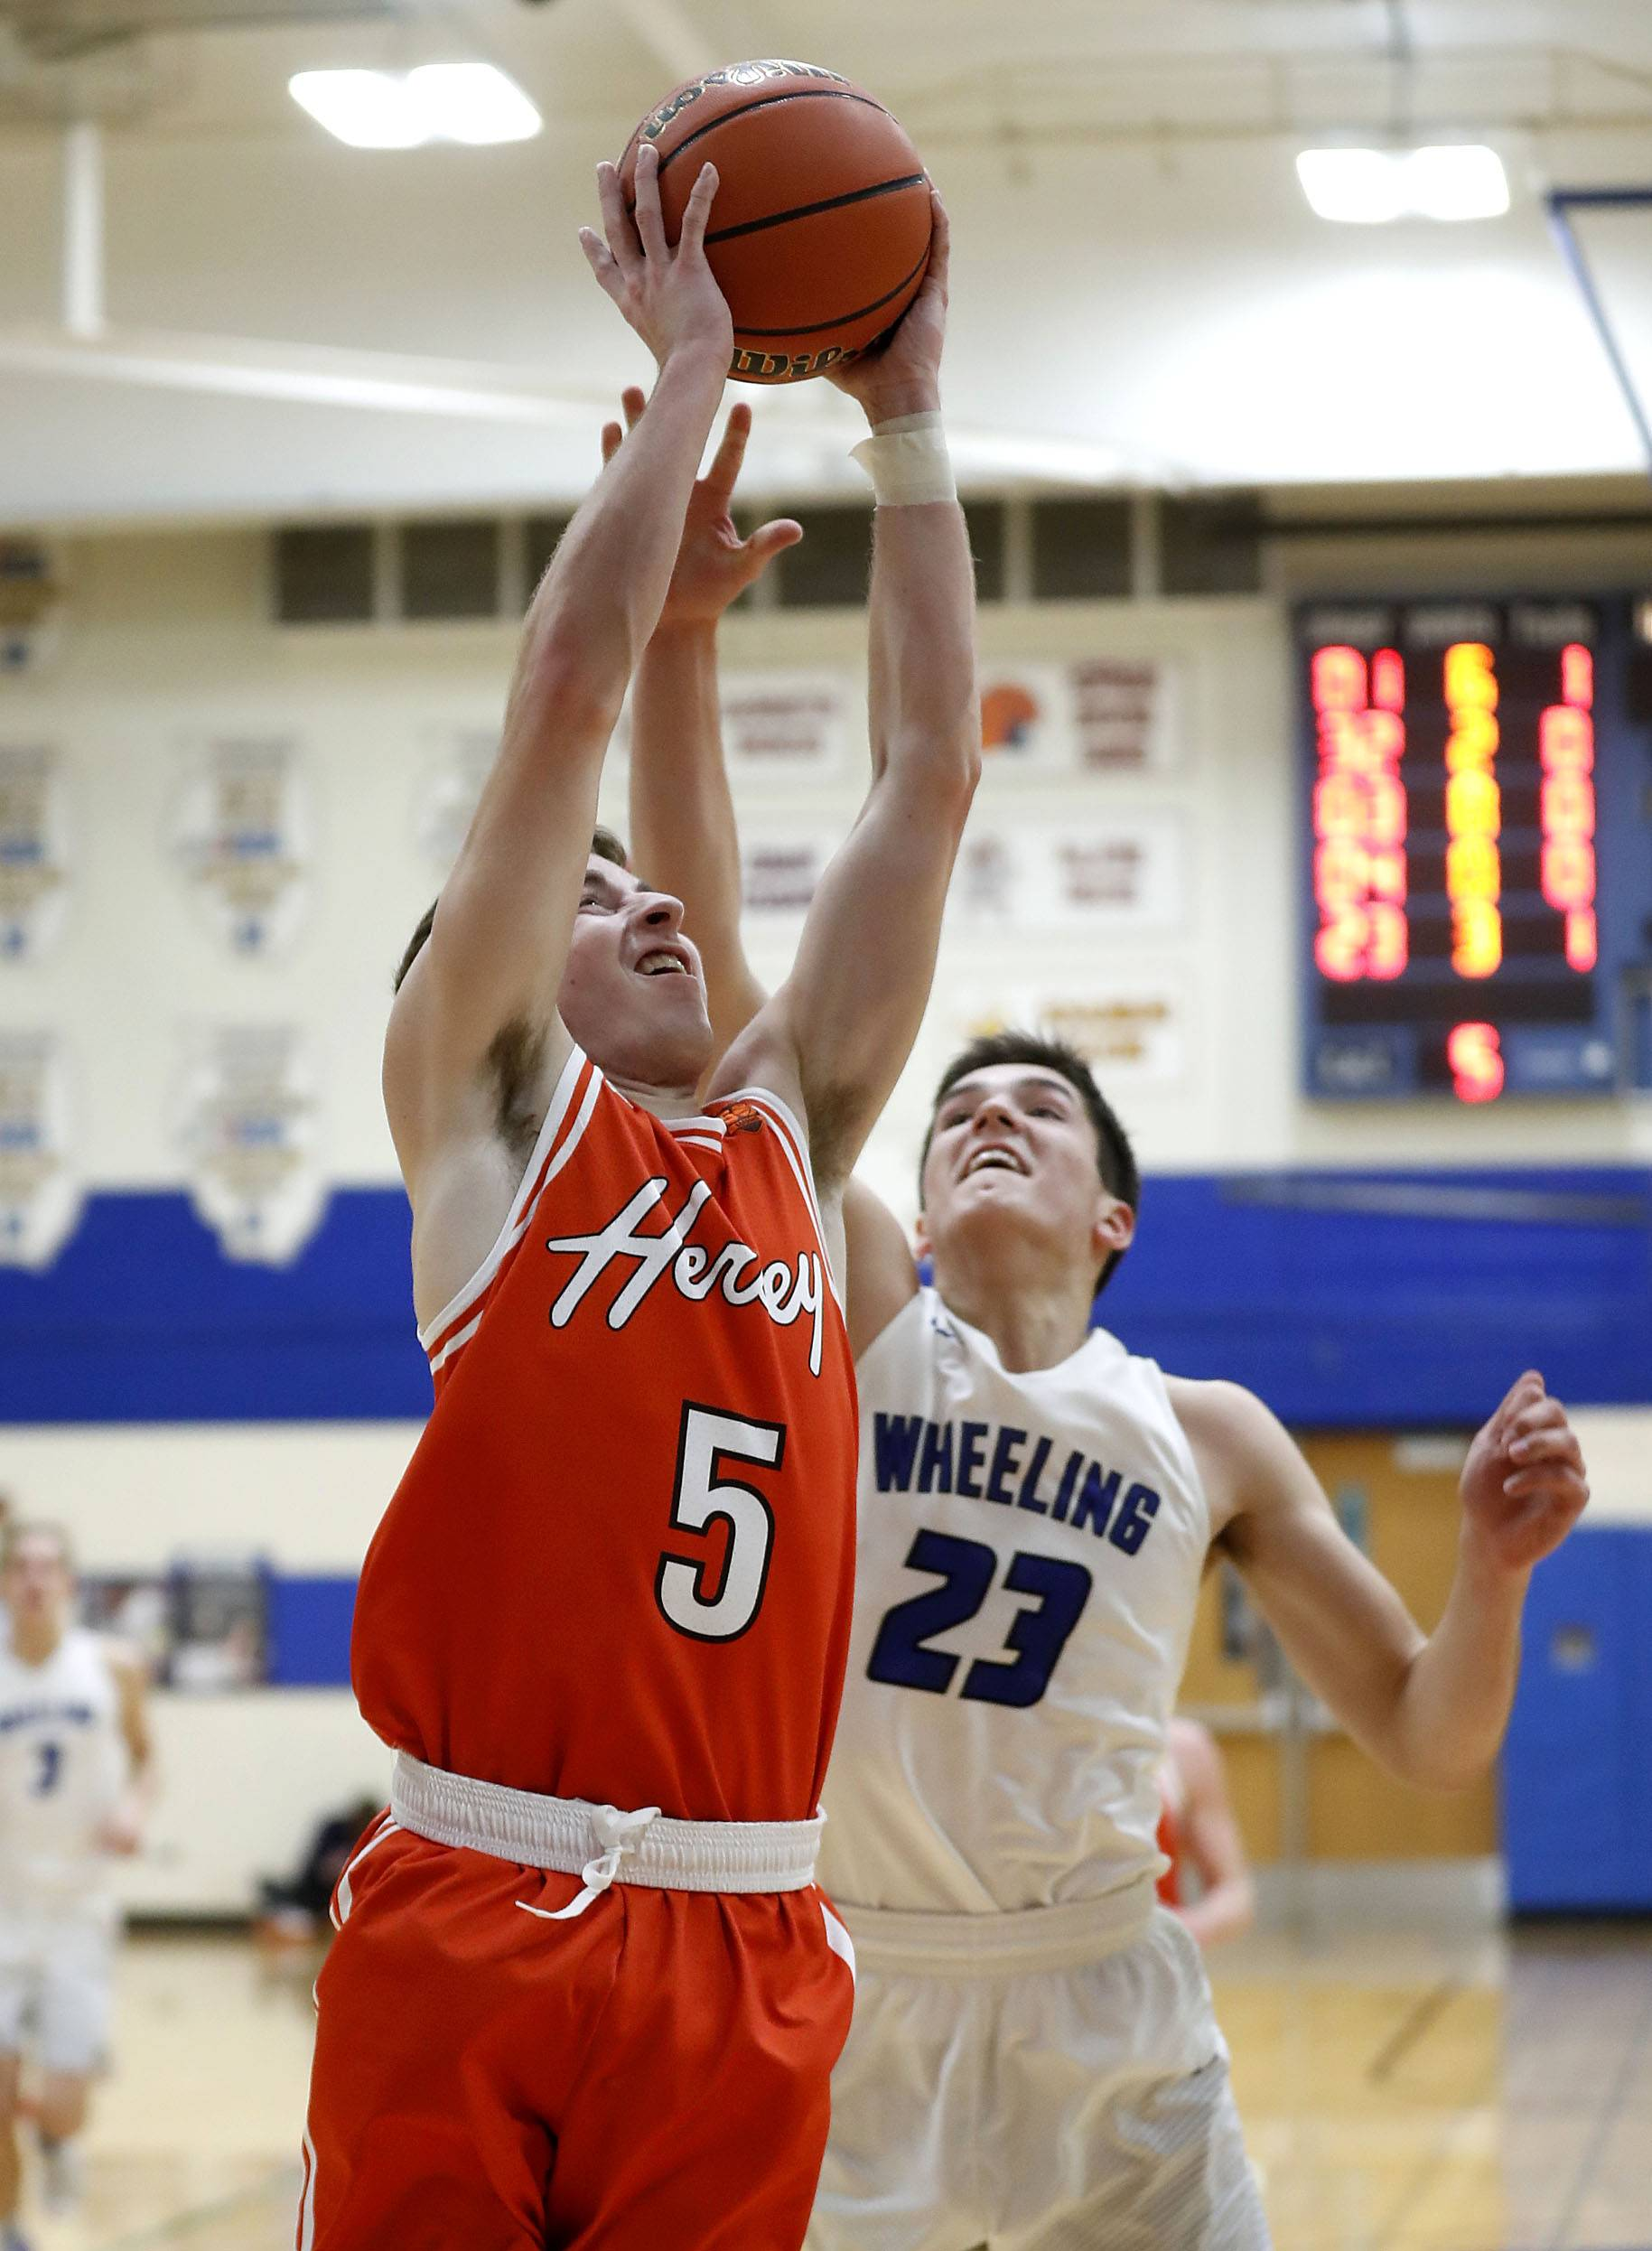 Hersey's Davis Belford (5) drives on Wheeling's Michael Best during their game Friday at Wheeling High School.